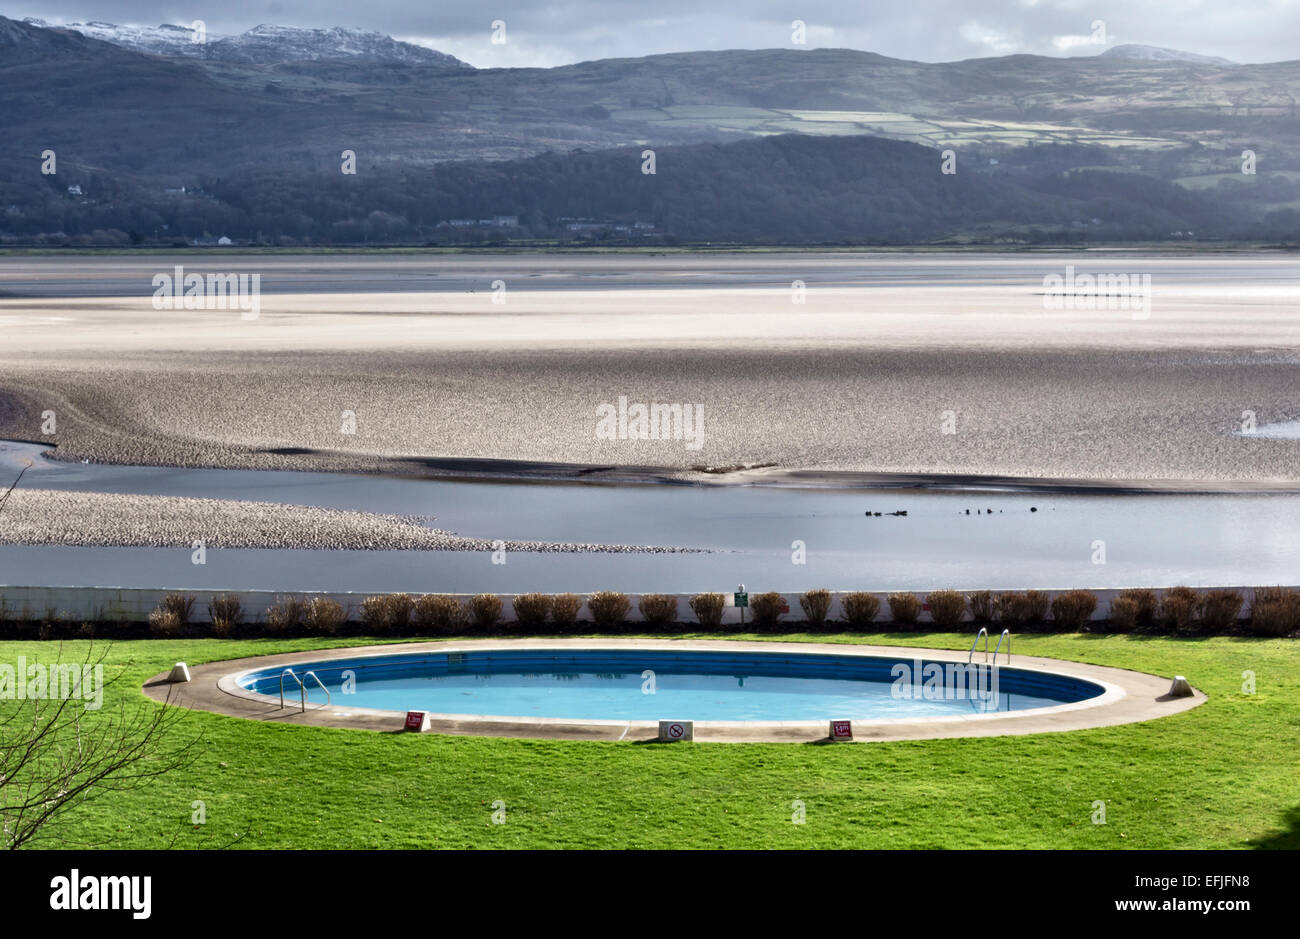 Portmeirion North Wales The Portmeirion Hotel Swimming Pool Stock Photo 78468804 Alamy